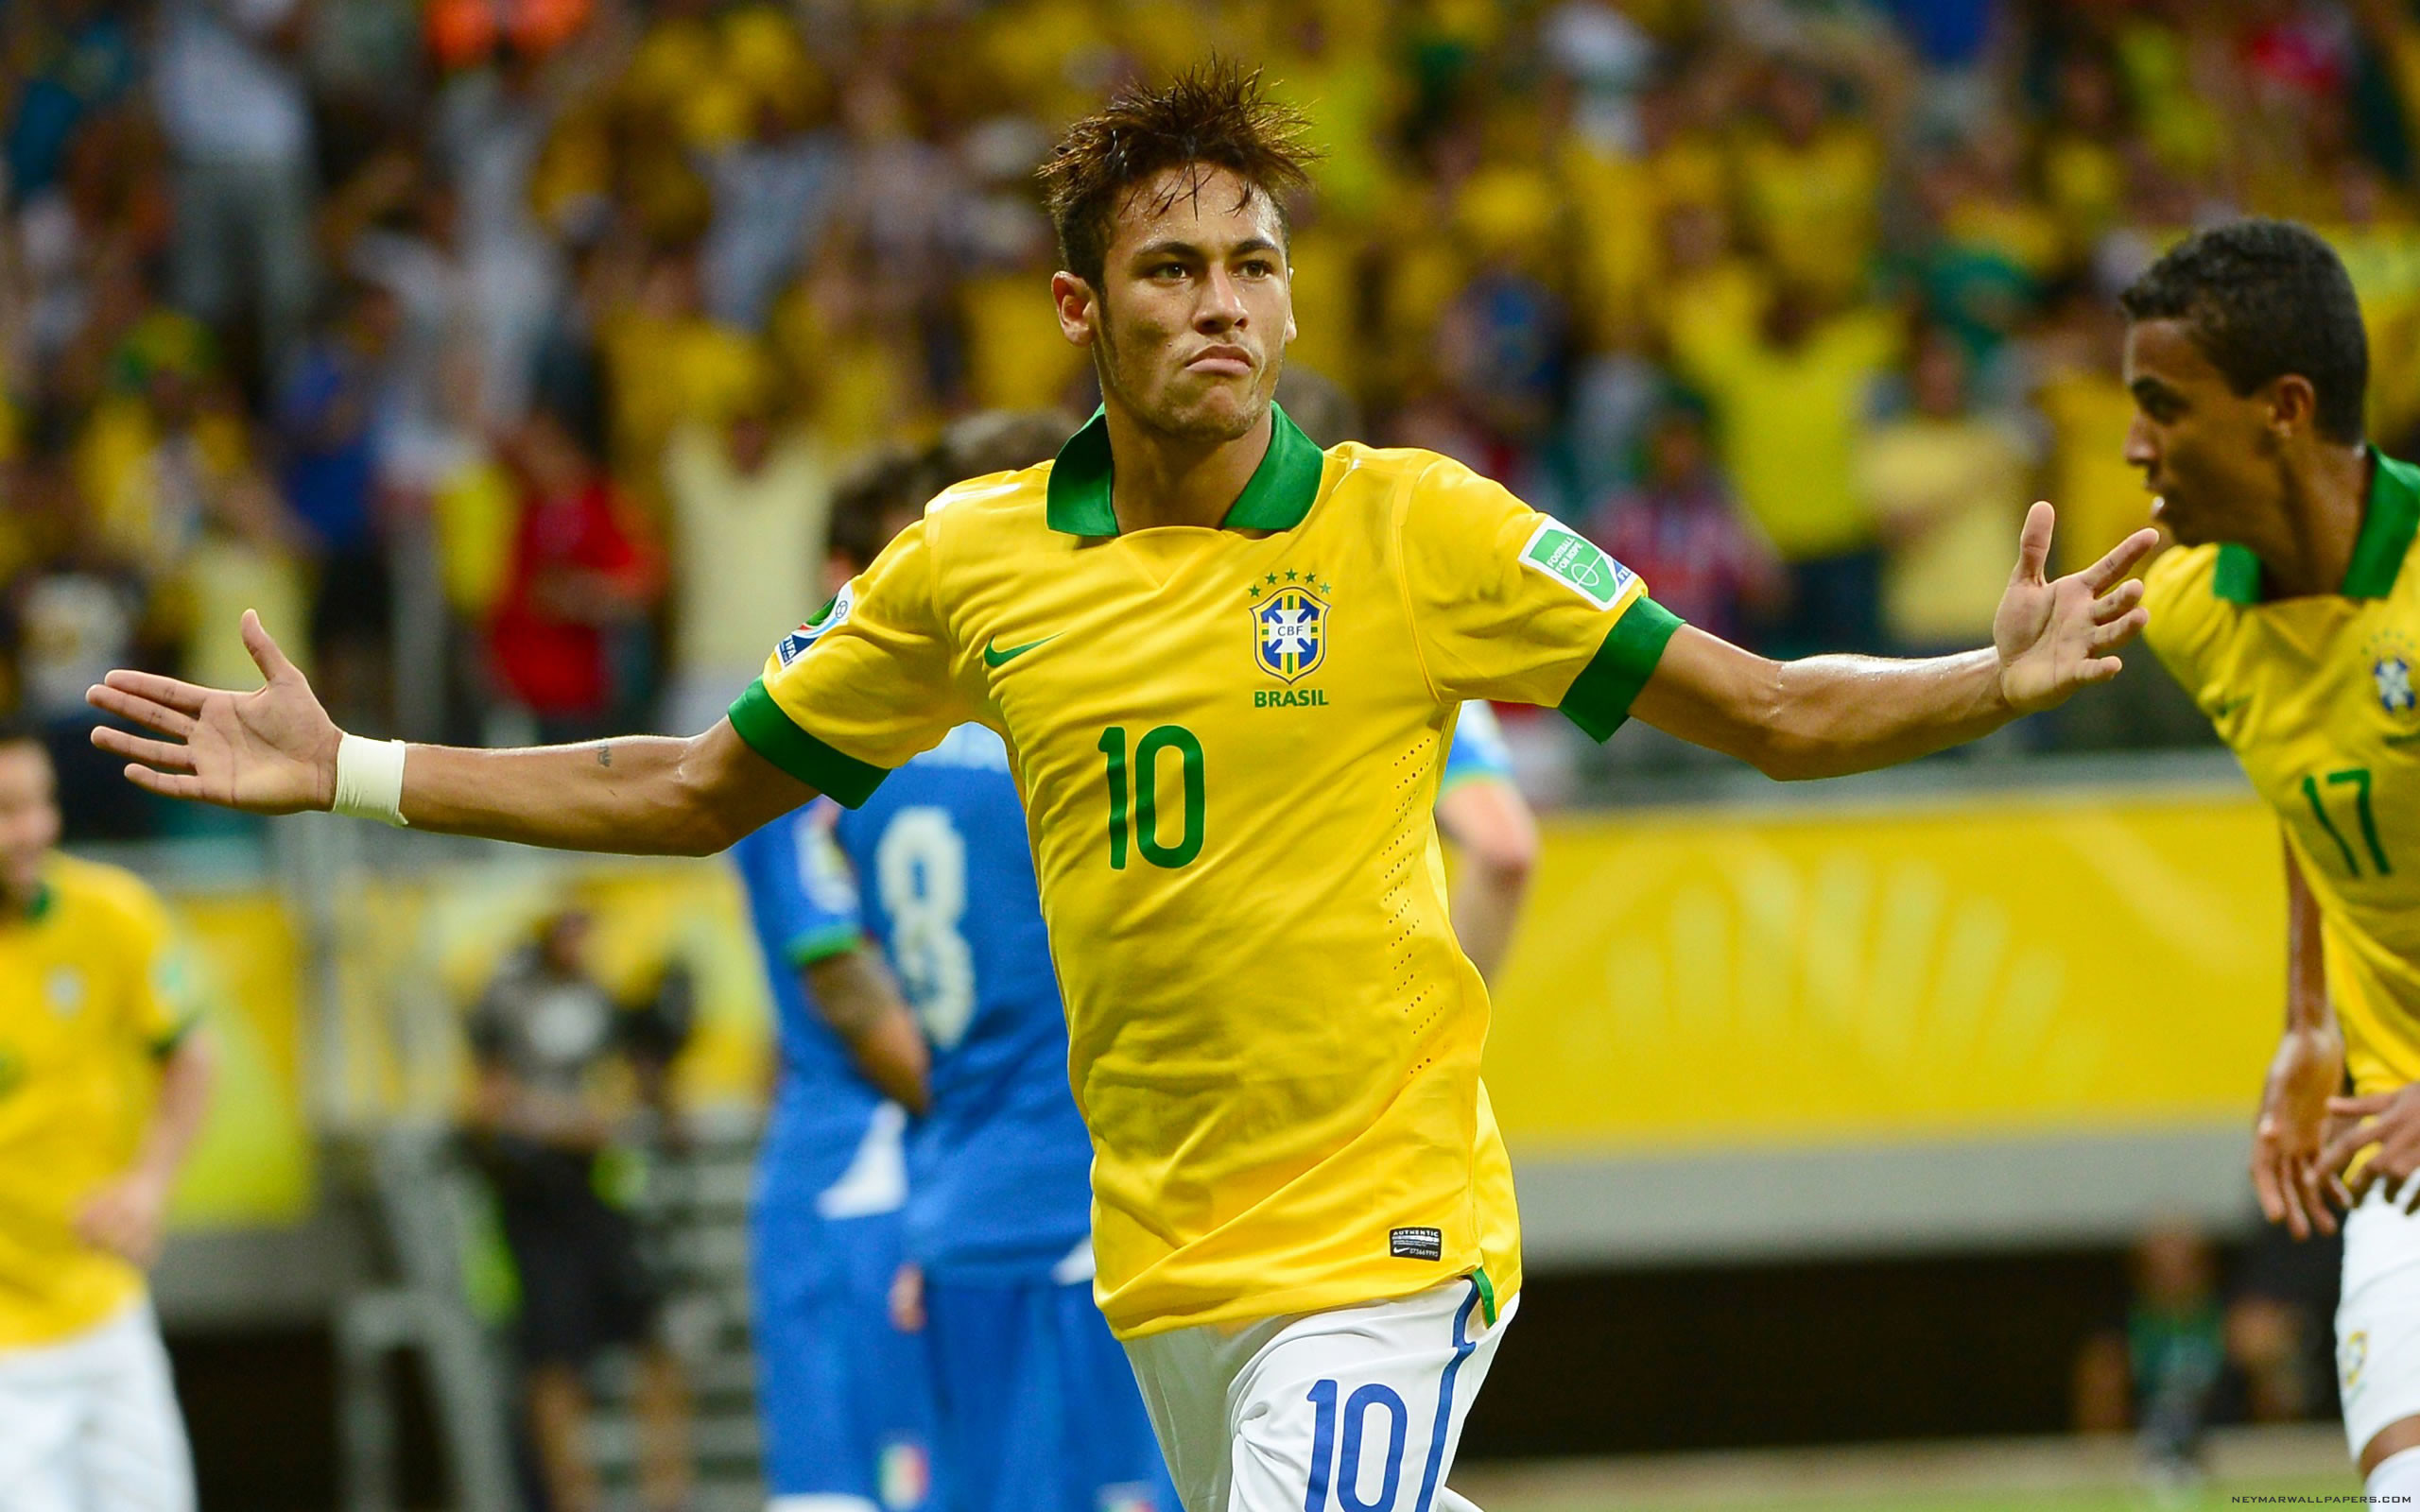 Daniel Alves Neymar will show how special he is in this World Cup 2560×1600